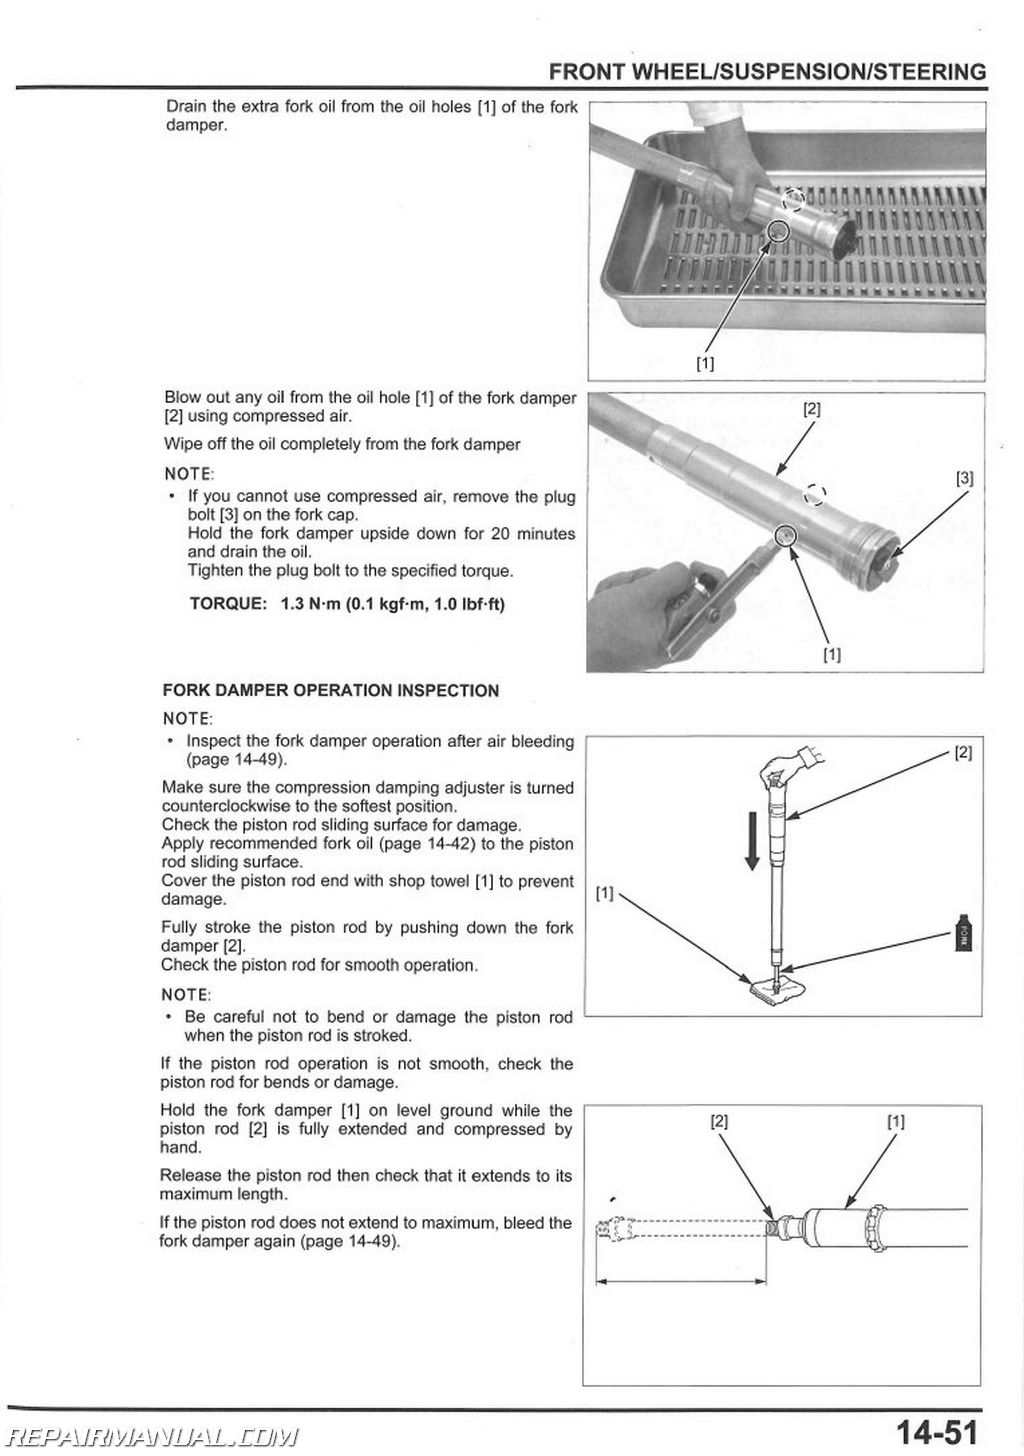 Honda Crf R Service Manual Page on Power Steering Check Valve